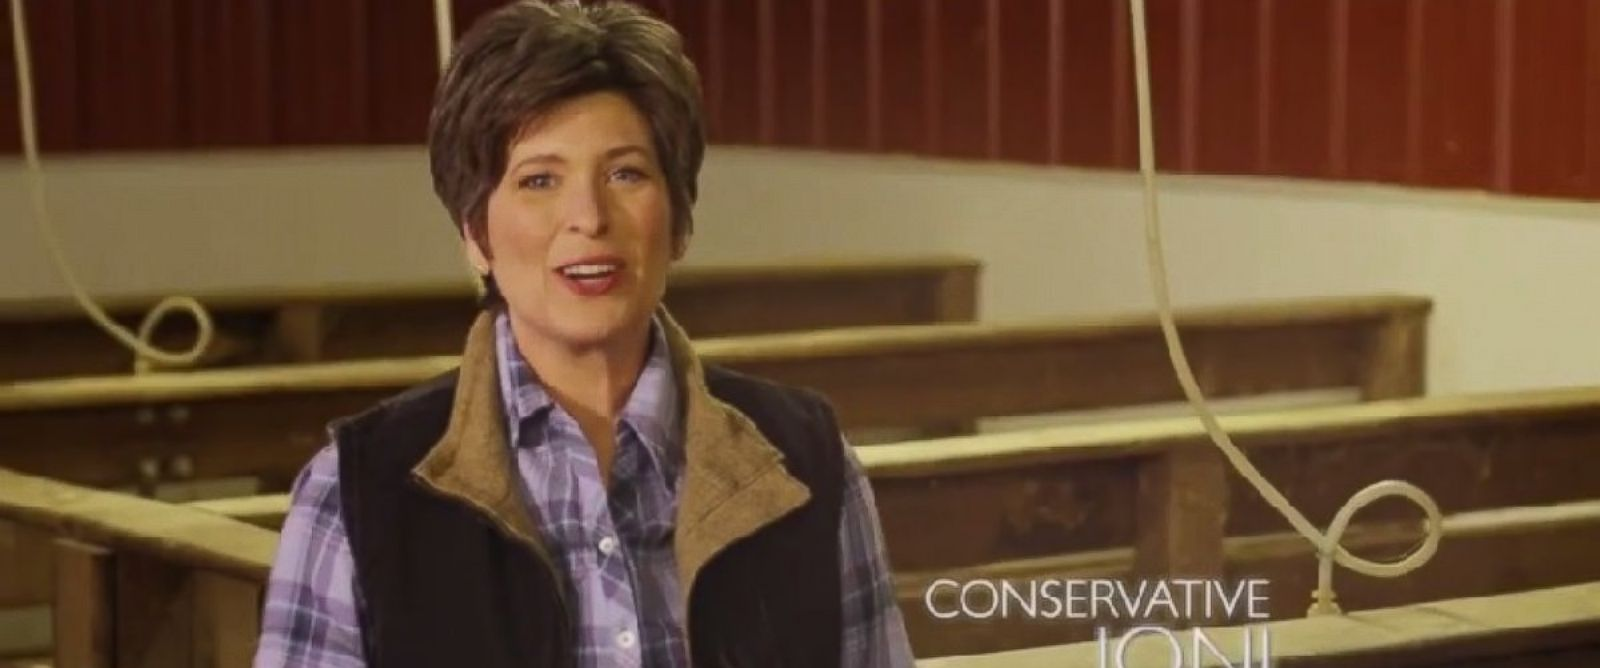 PHOTO: Senate candidate Joni Ernst wants to make Washington squeal.